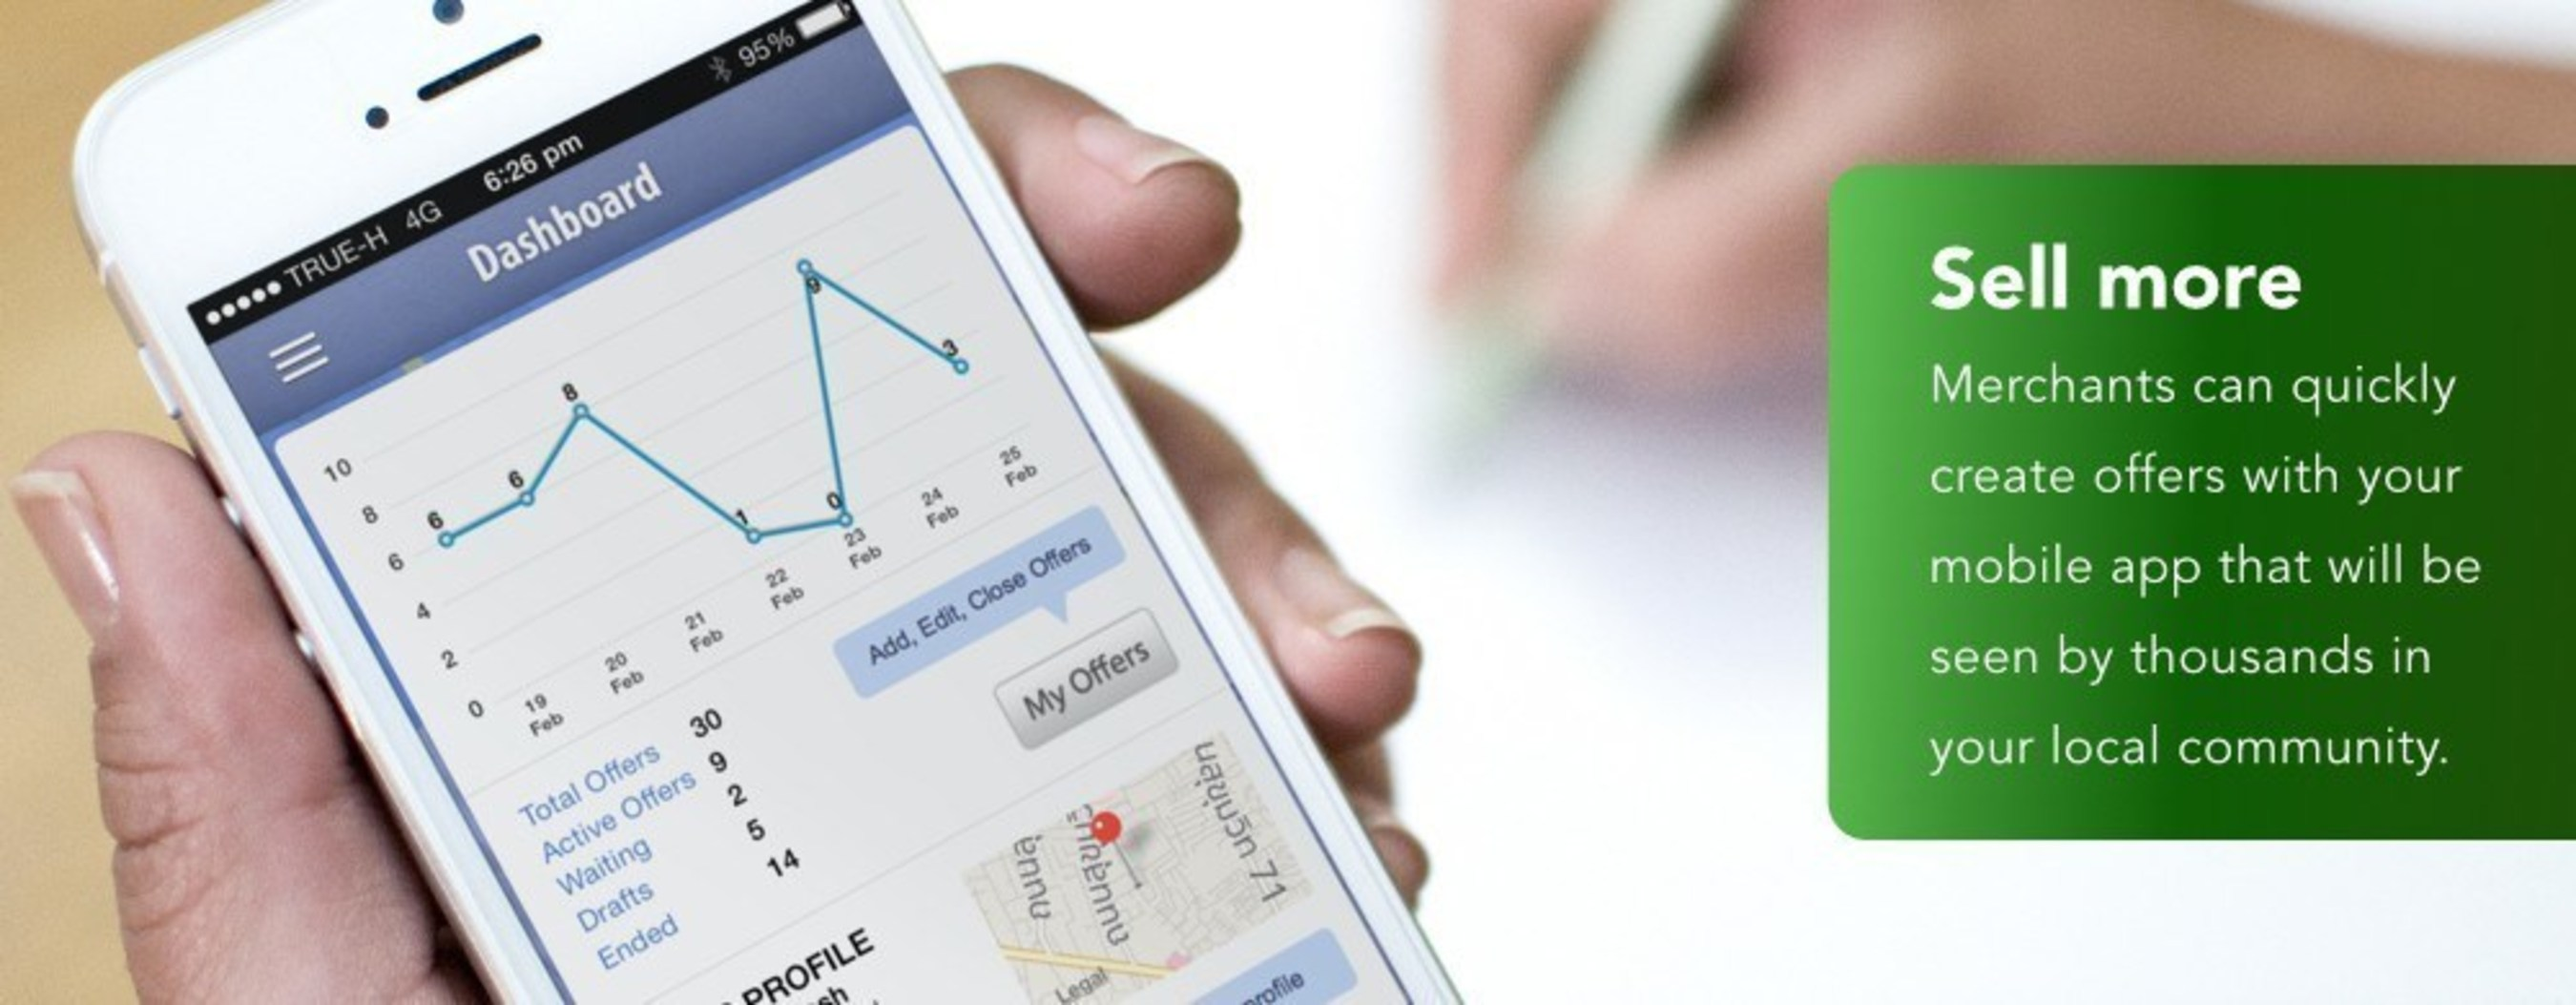 New Mobile App Helps Newspapers Build a Strong and Profitable Network of Local Merchants